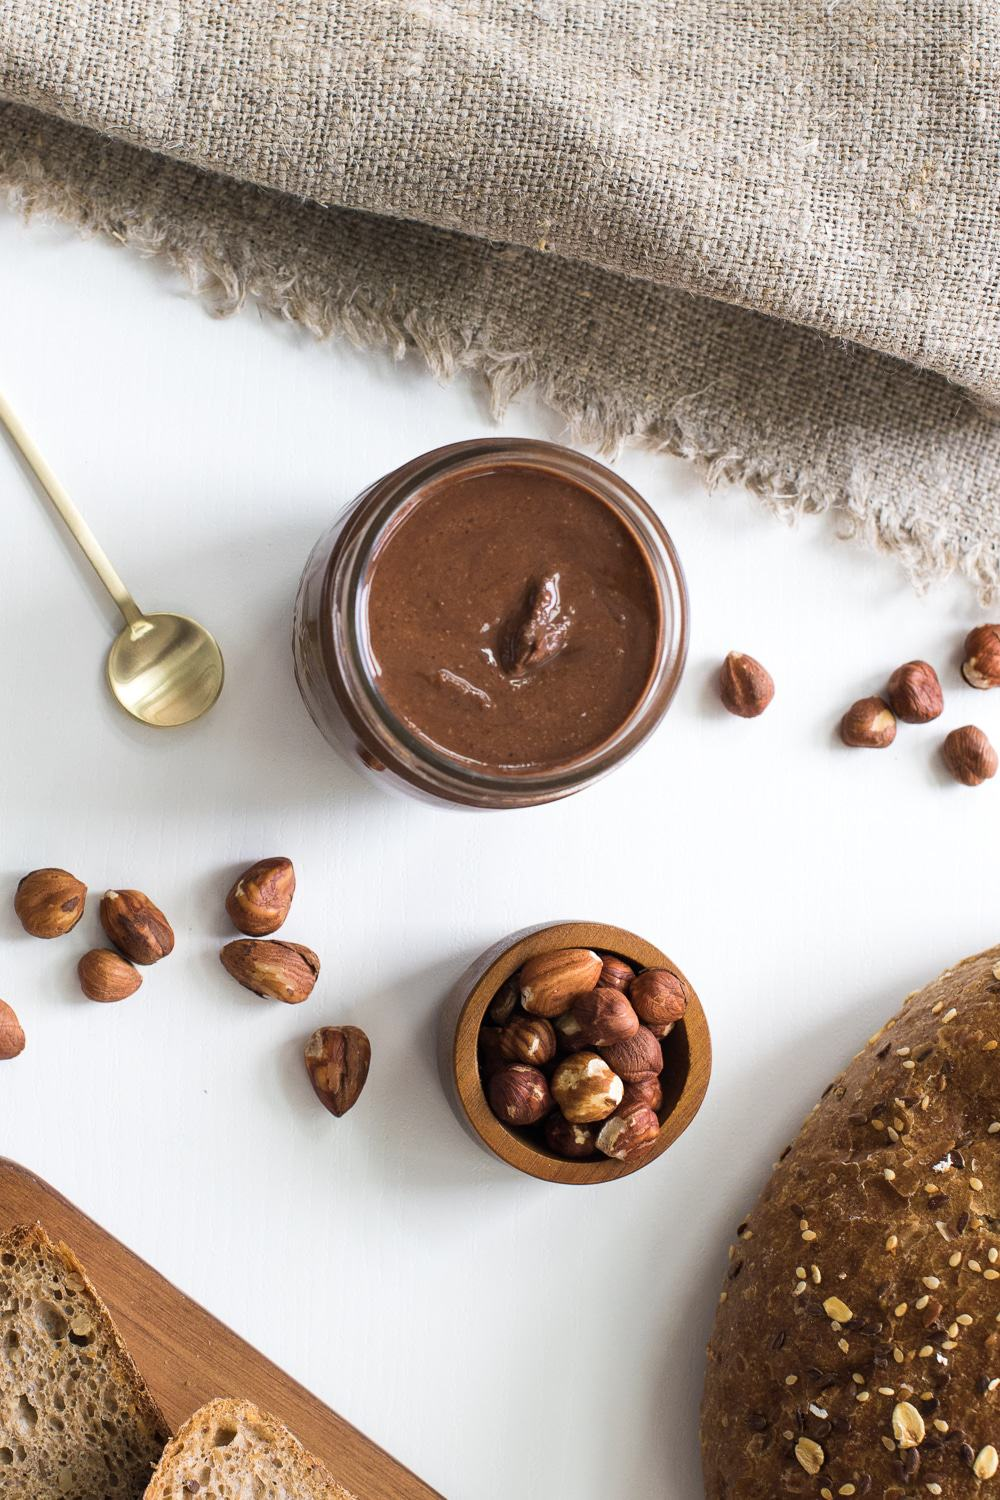 This vegan Nutella is so simple to make and it's delicious! It has less than half the calories of the real deal and it's full of vitamins and healthy fats!